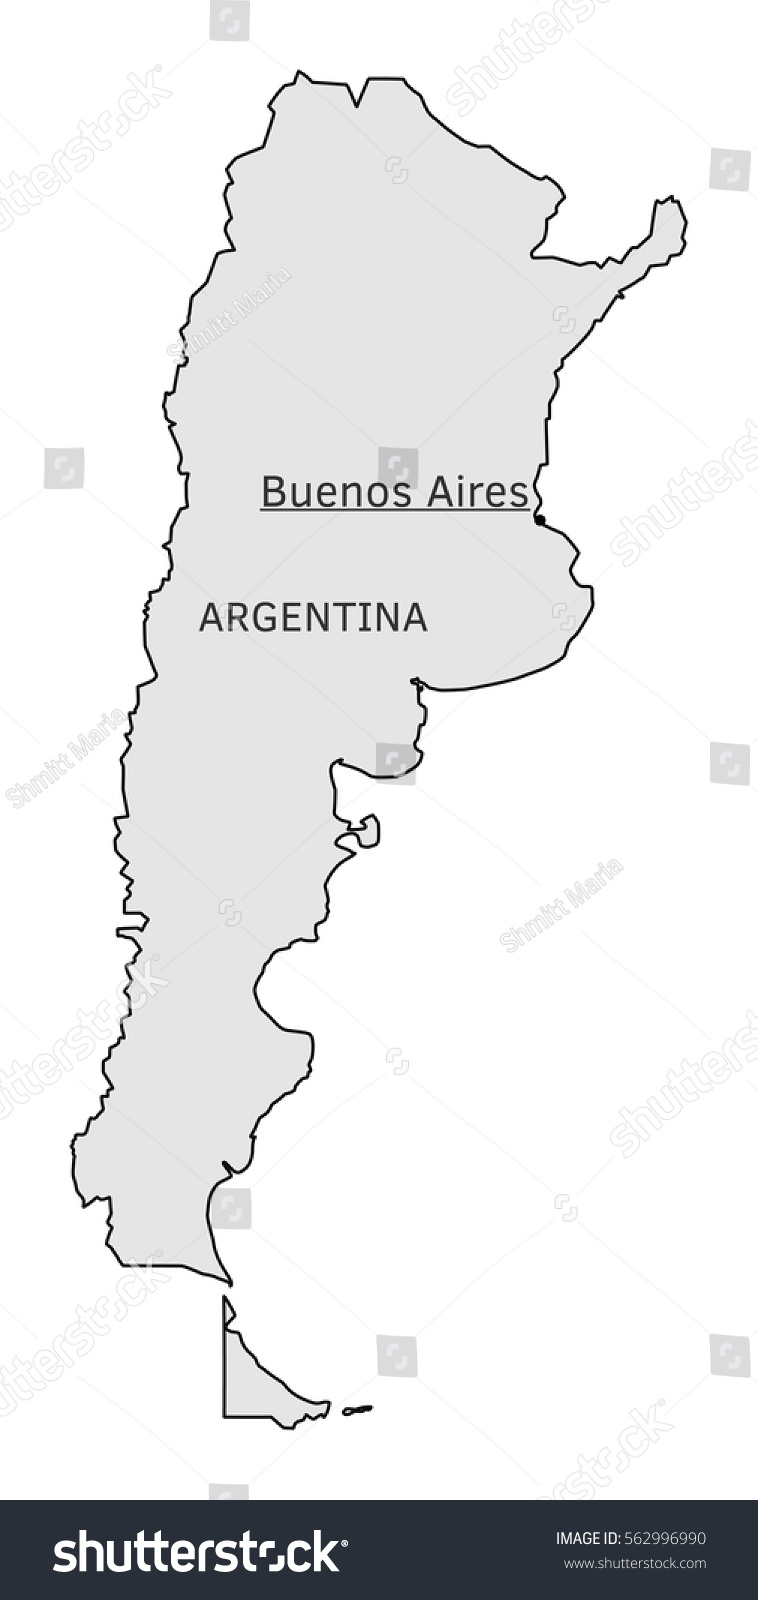 Argentina Silhouette Map Buenos Aires Capital Stock Vector - Argentina map buenos aires